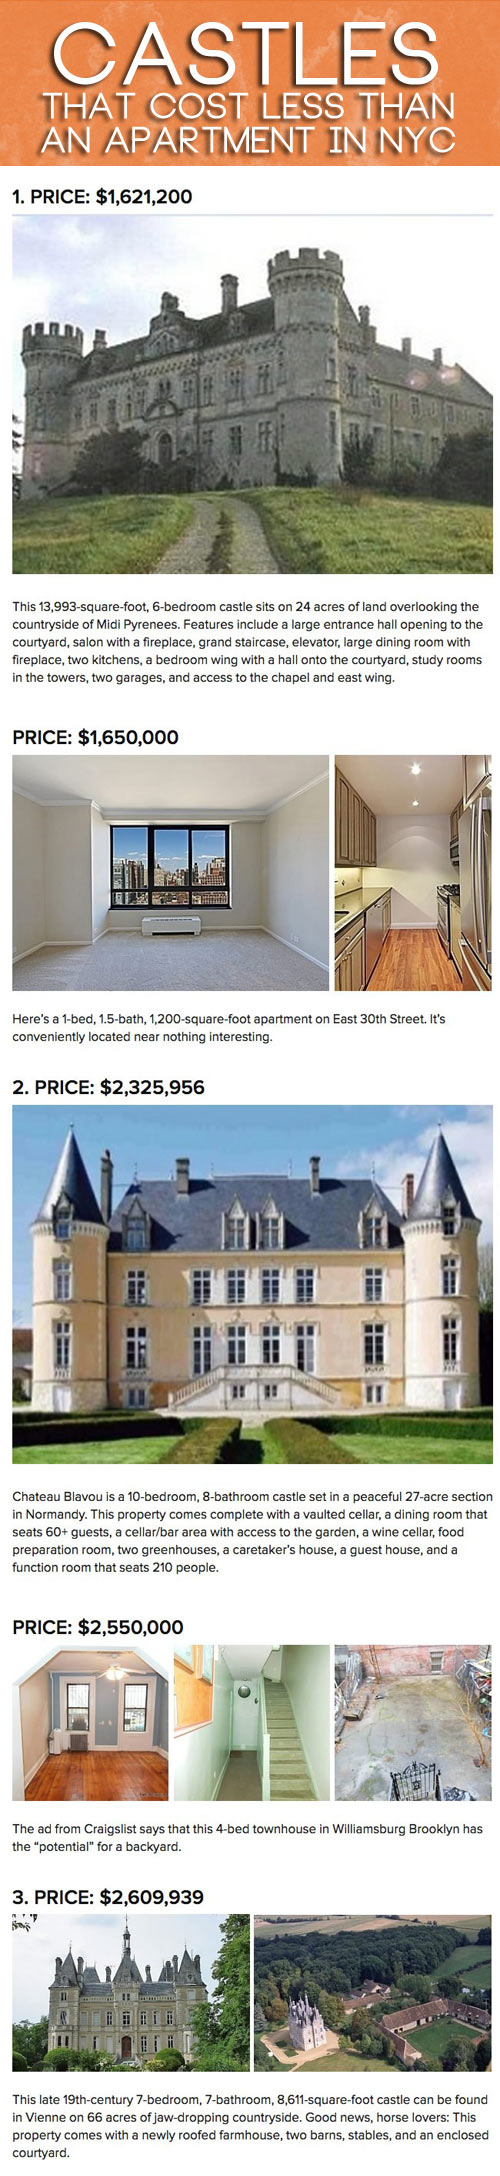 Castles that cost less than an apartment in NYC...